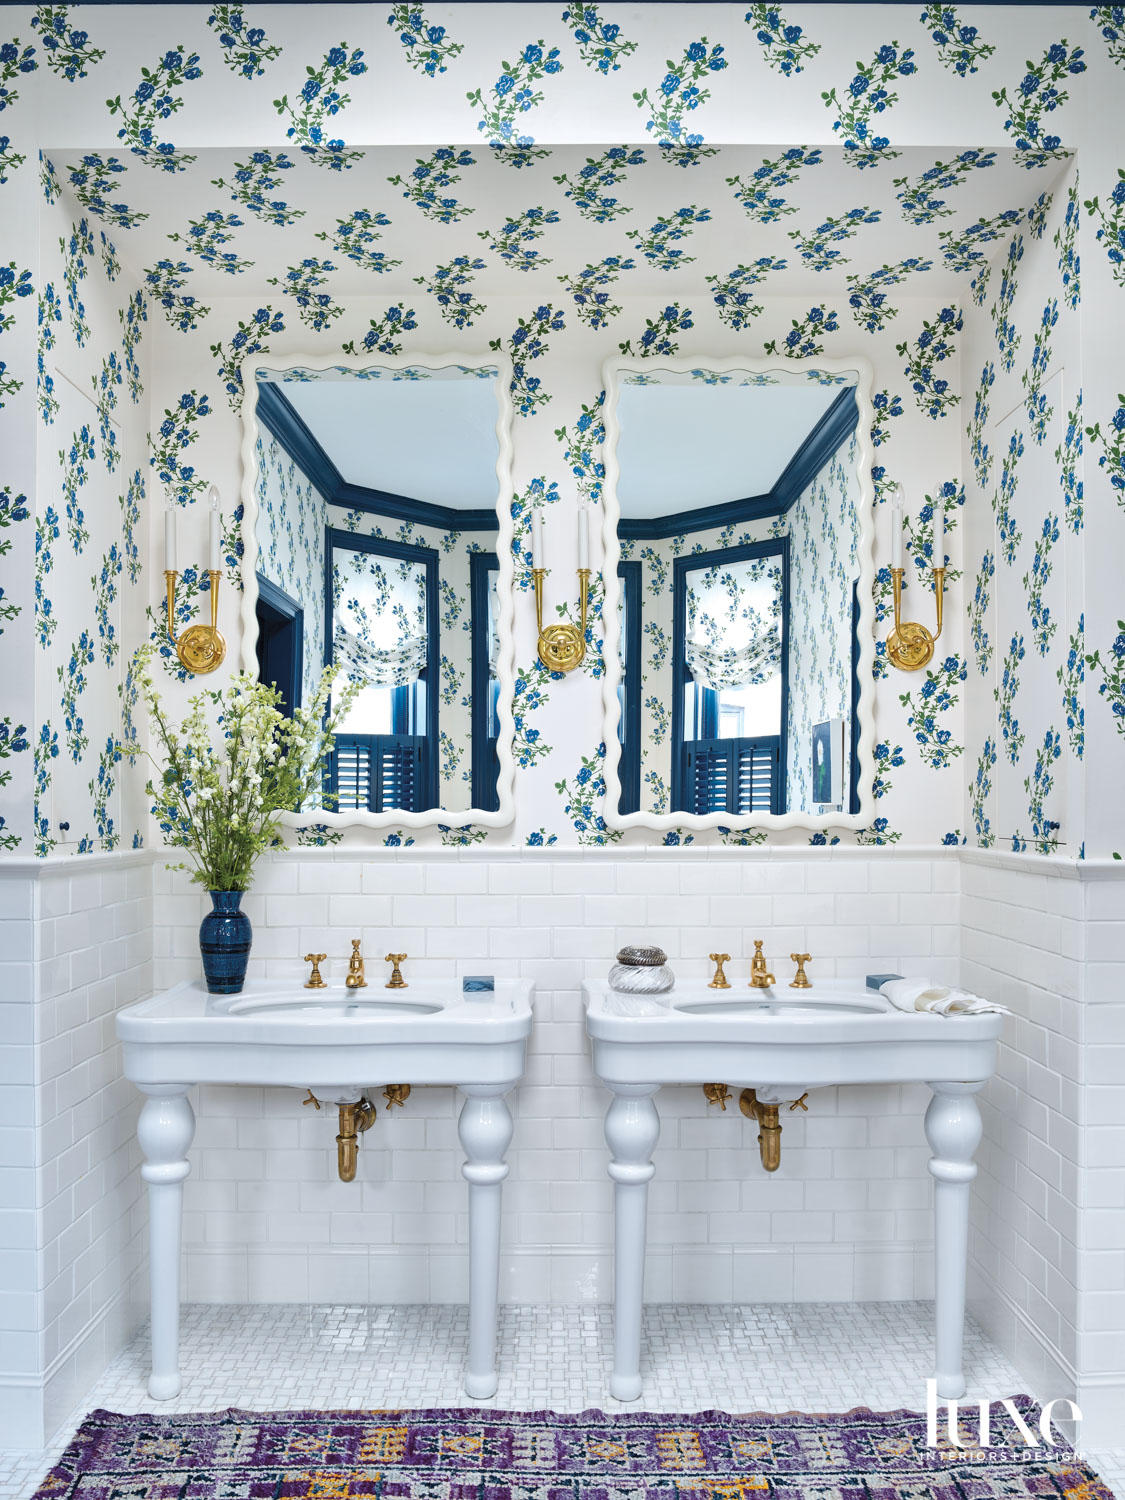 A bathroom with blue-and-white floral...